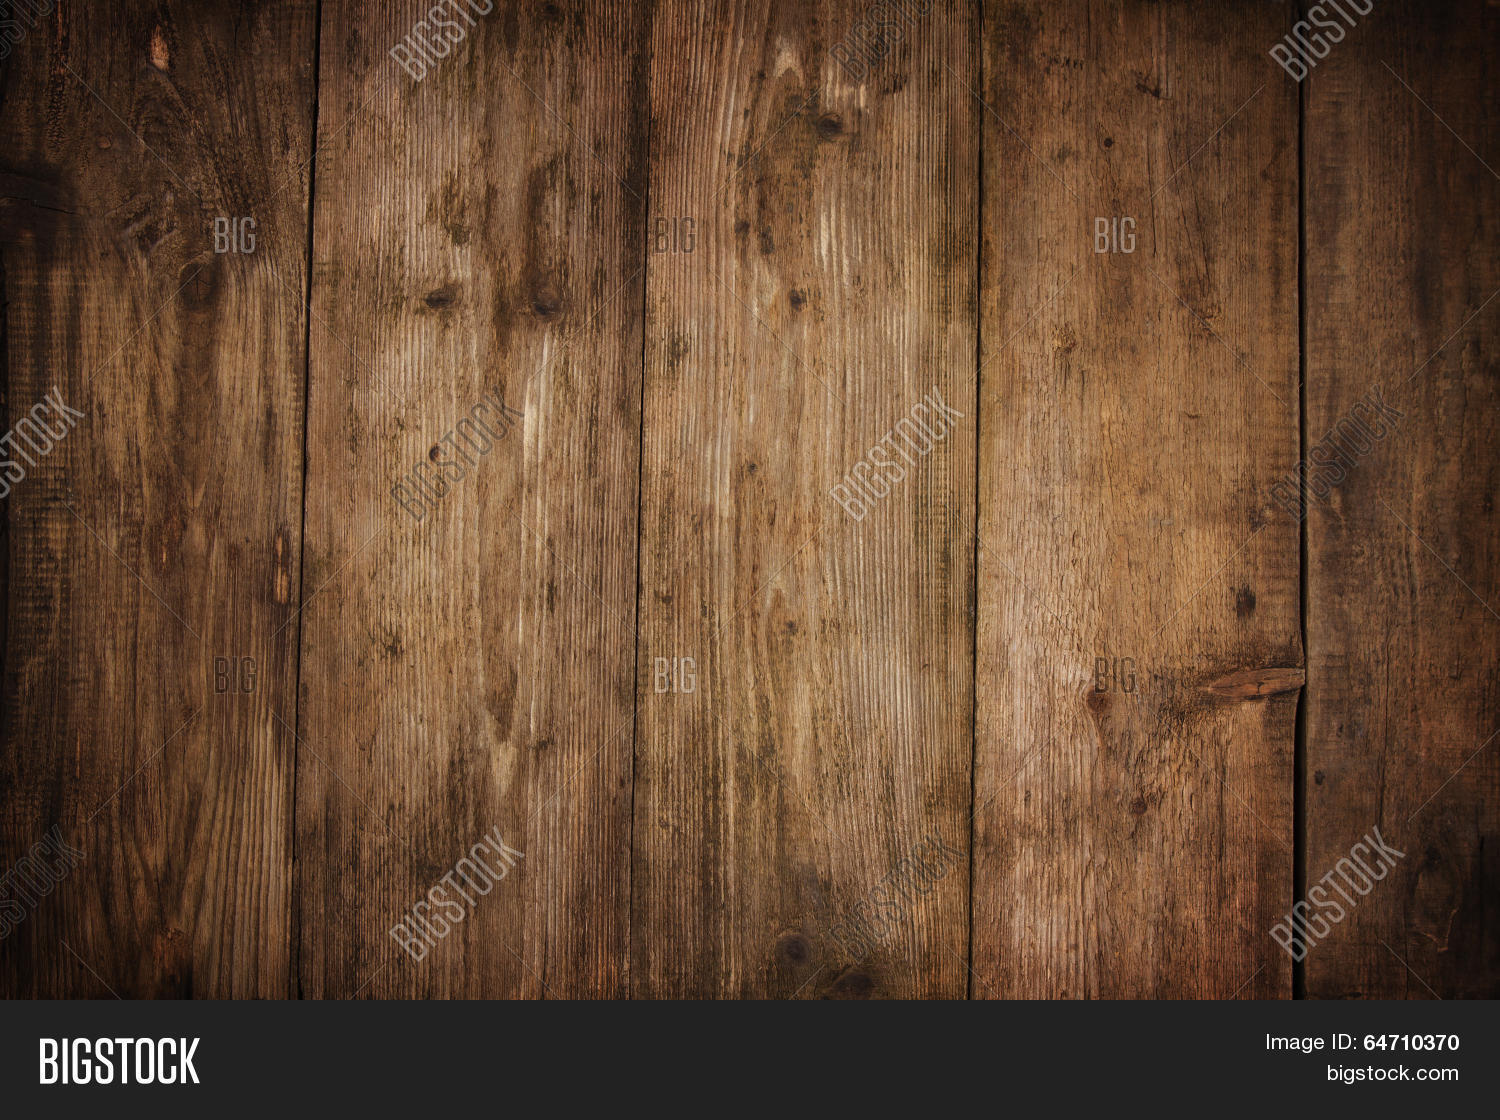 wood texture plank grain background image photo bigstock. Black Bedroom Furniture Sets. Home Design Ideas